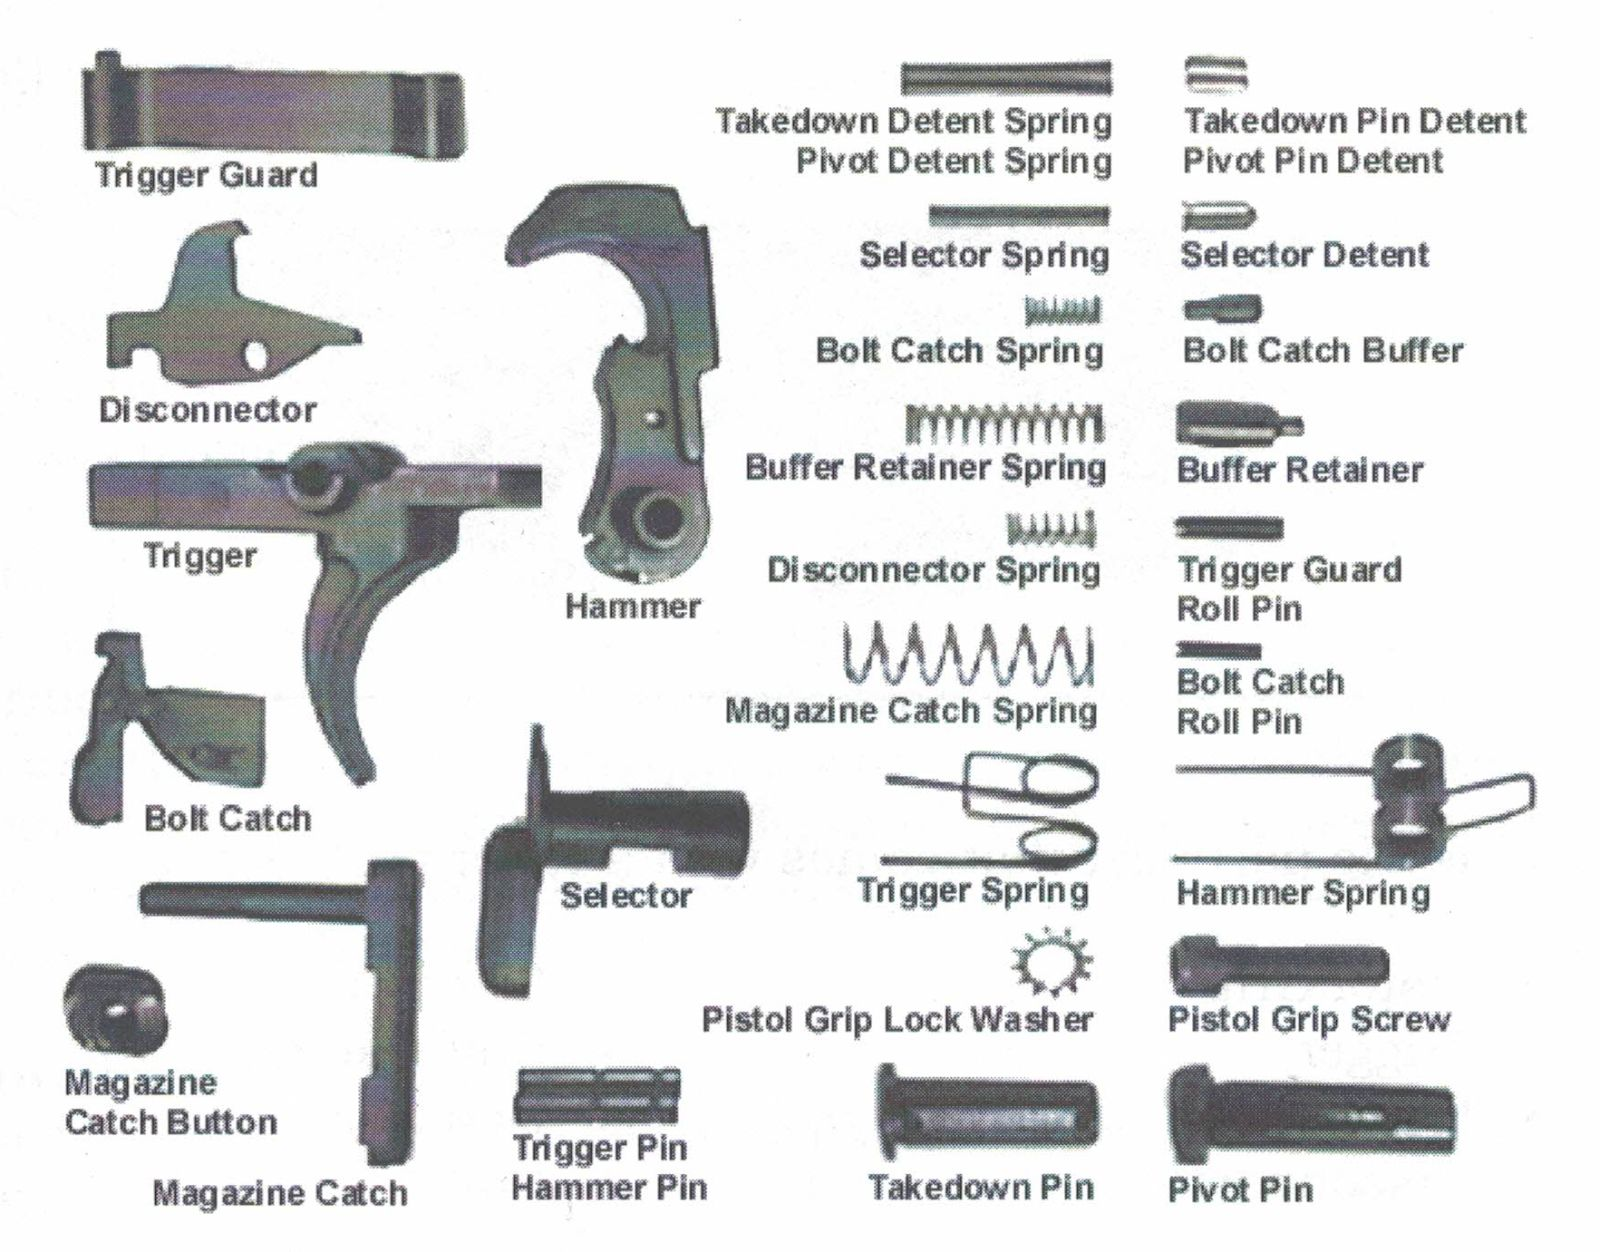 ar 15 lower diagram wiring for ignition coil receiver parts photos available and where page 1